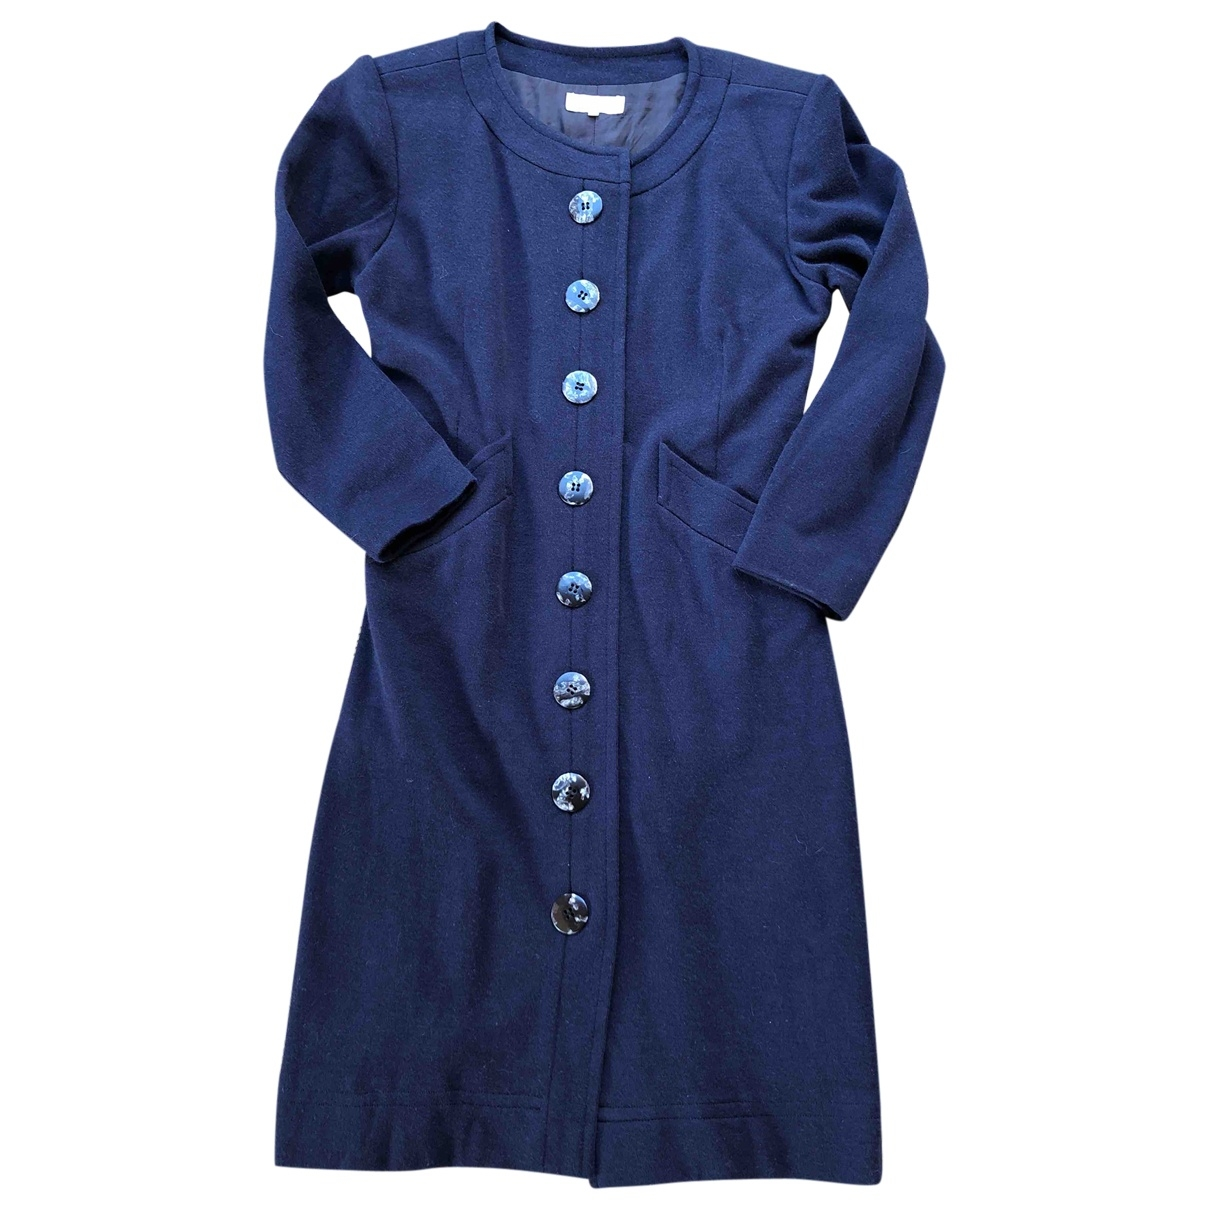 Yves Saint Laurent \N Navy Wool dress for Women 36 FR